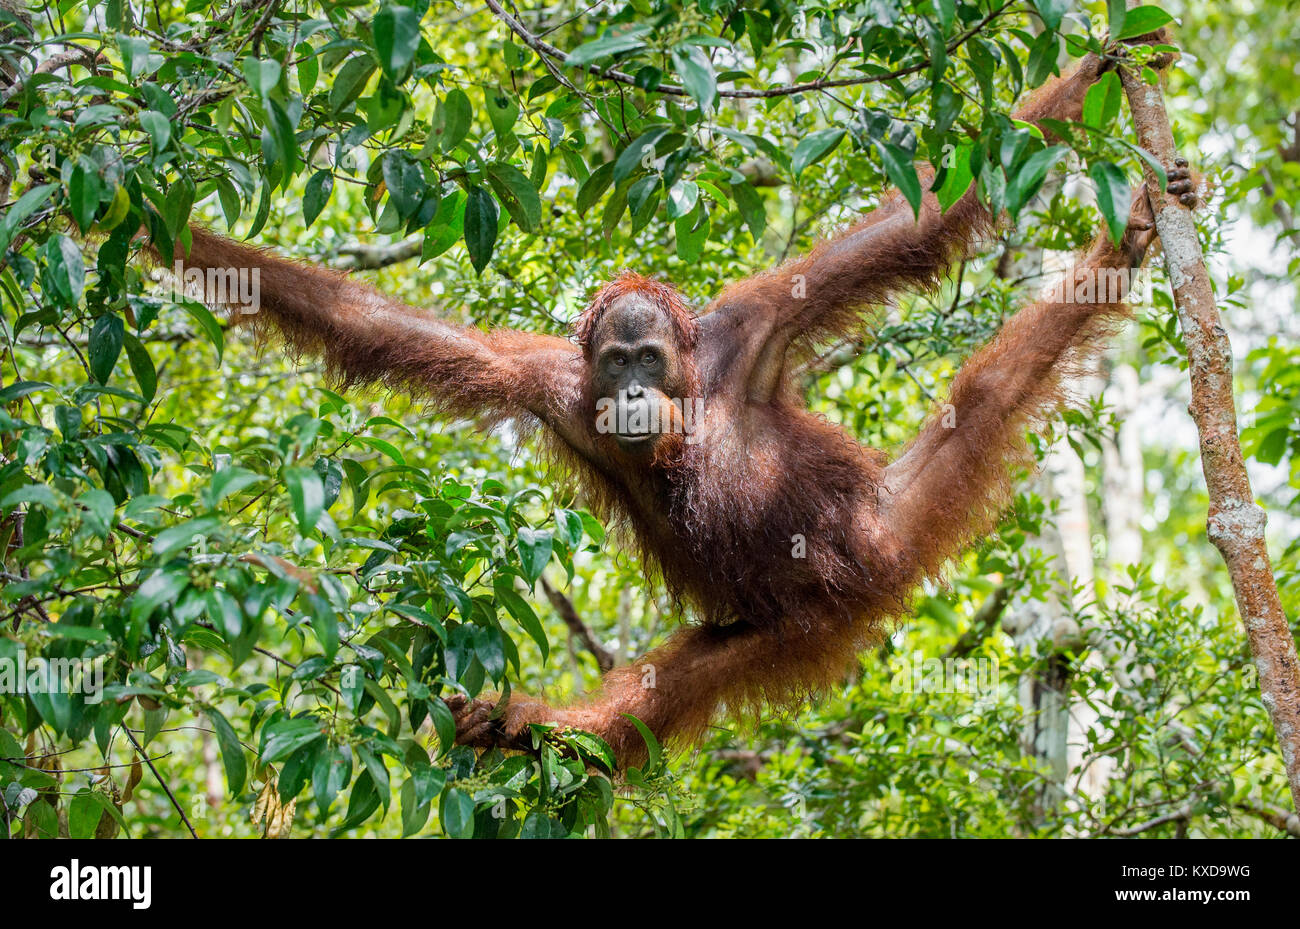 Great Ape on the tree. Central Bornean orangutan  ( Pongo pygmaeus wurmbii ) in natural habitat. Wild nature in - Stock Image